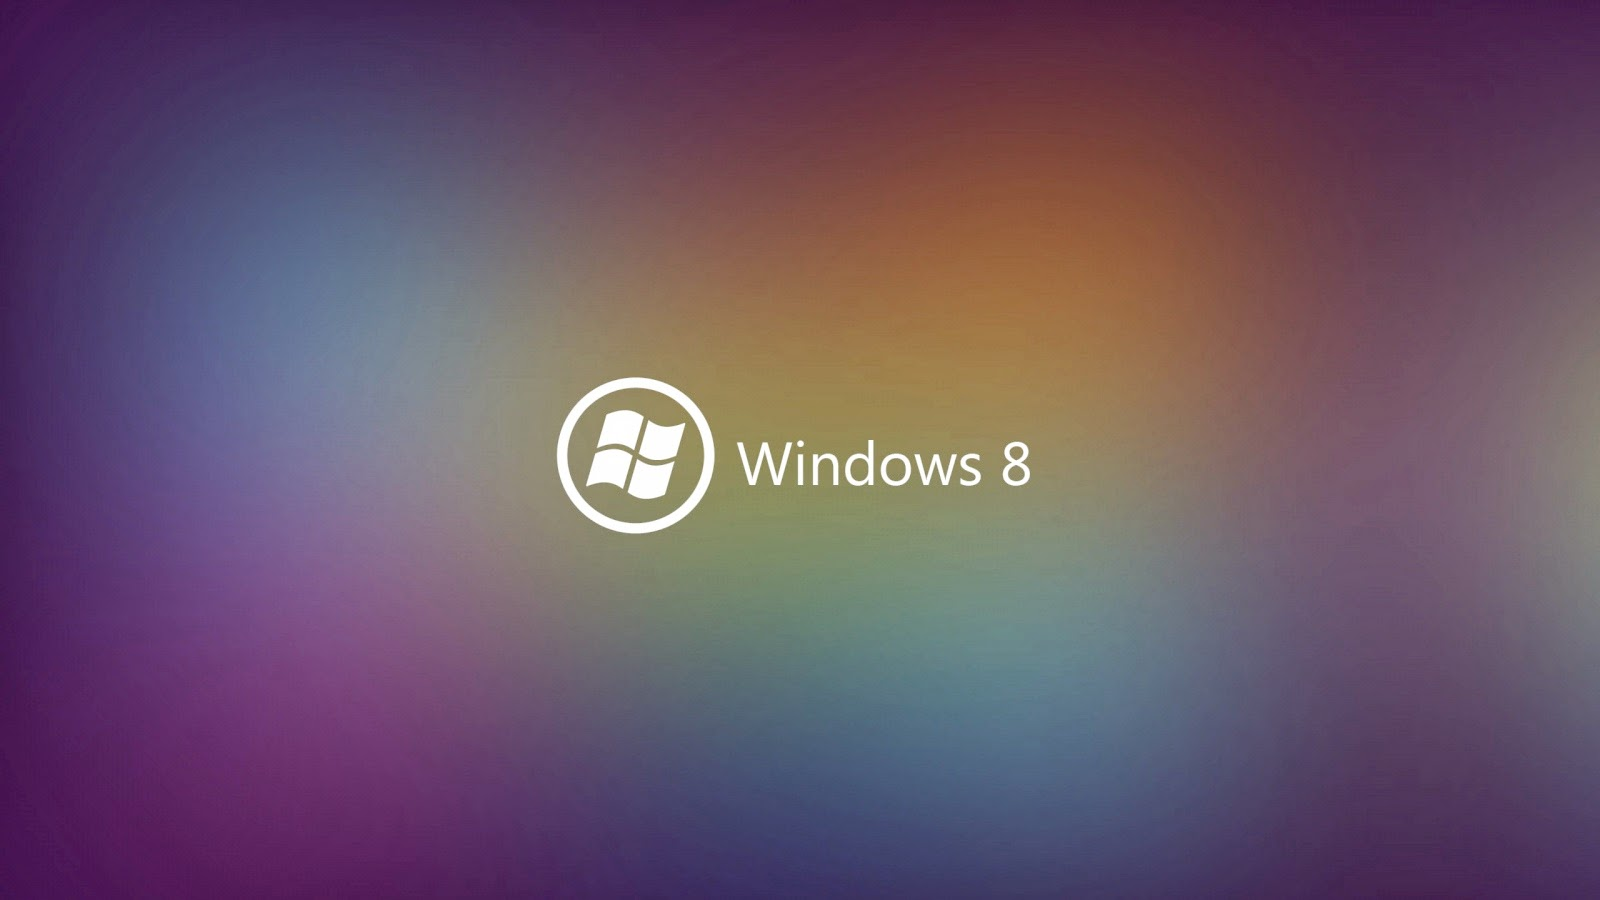 Windows 8 Background Wallpaper | Background Wallpaper hd